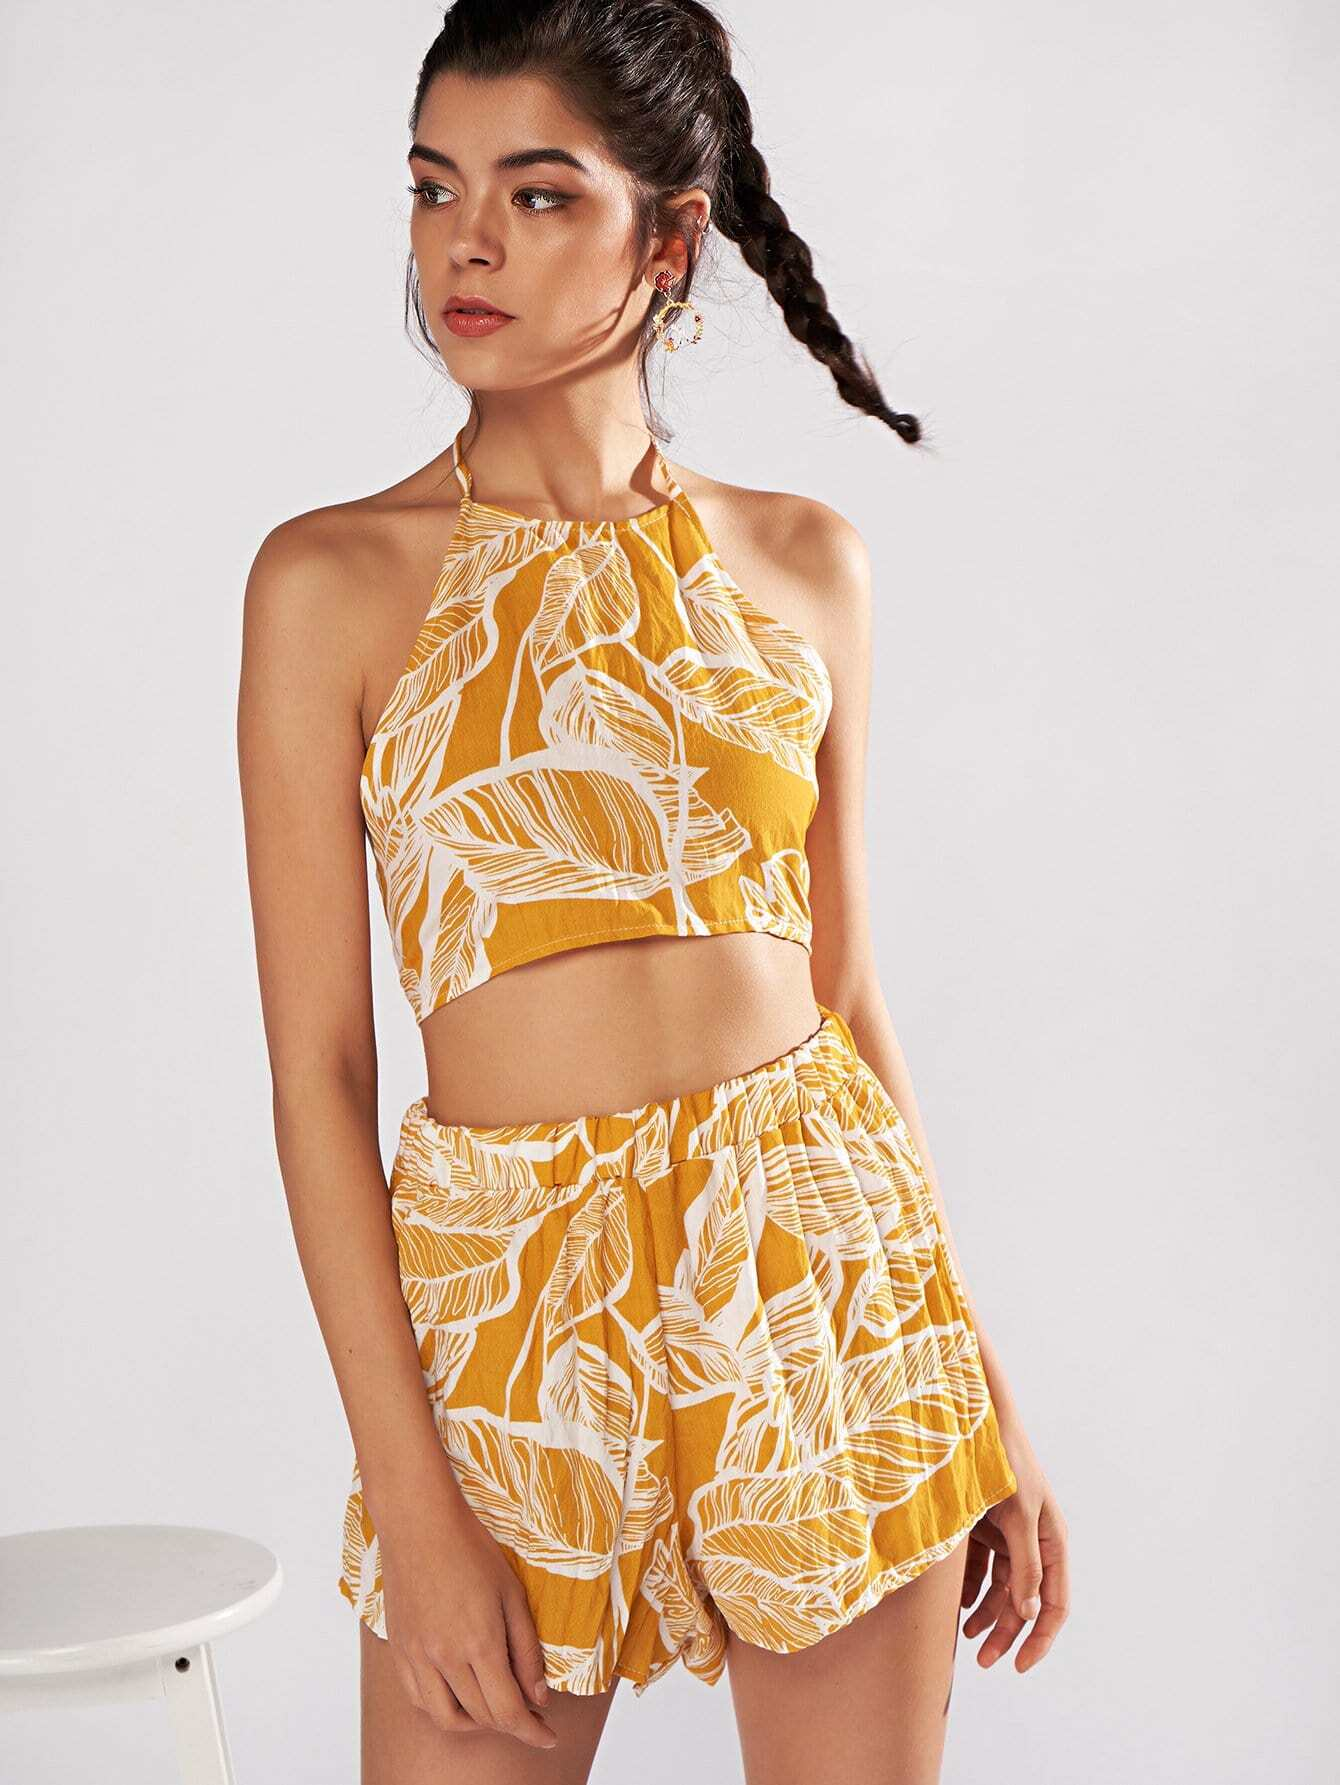 Leaves Print Knot Back Haler Top With Shorts zip up back knot plaid top